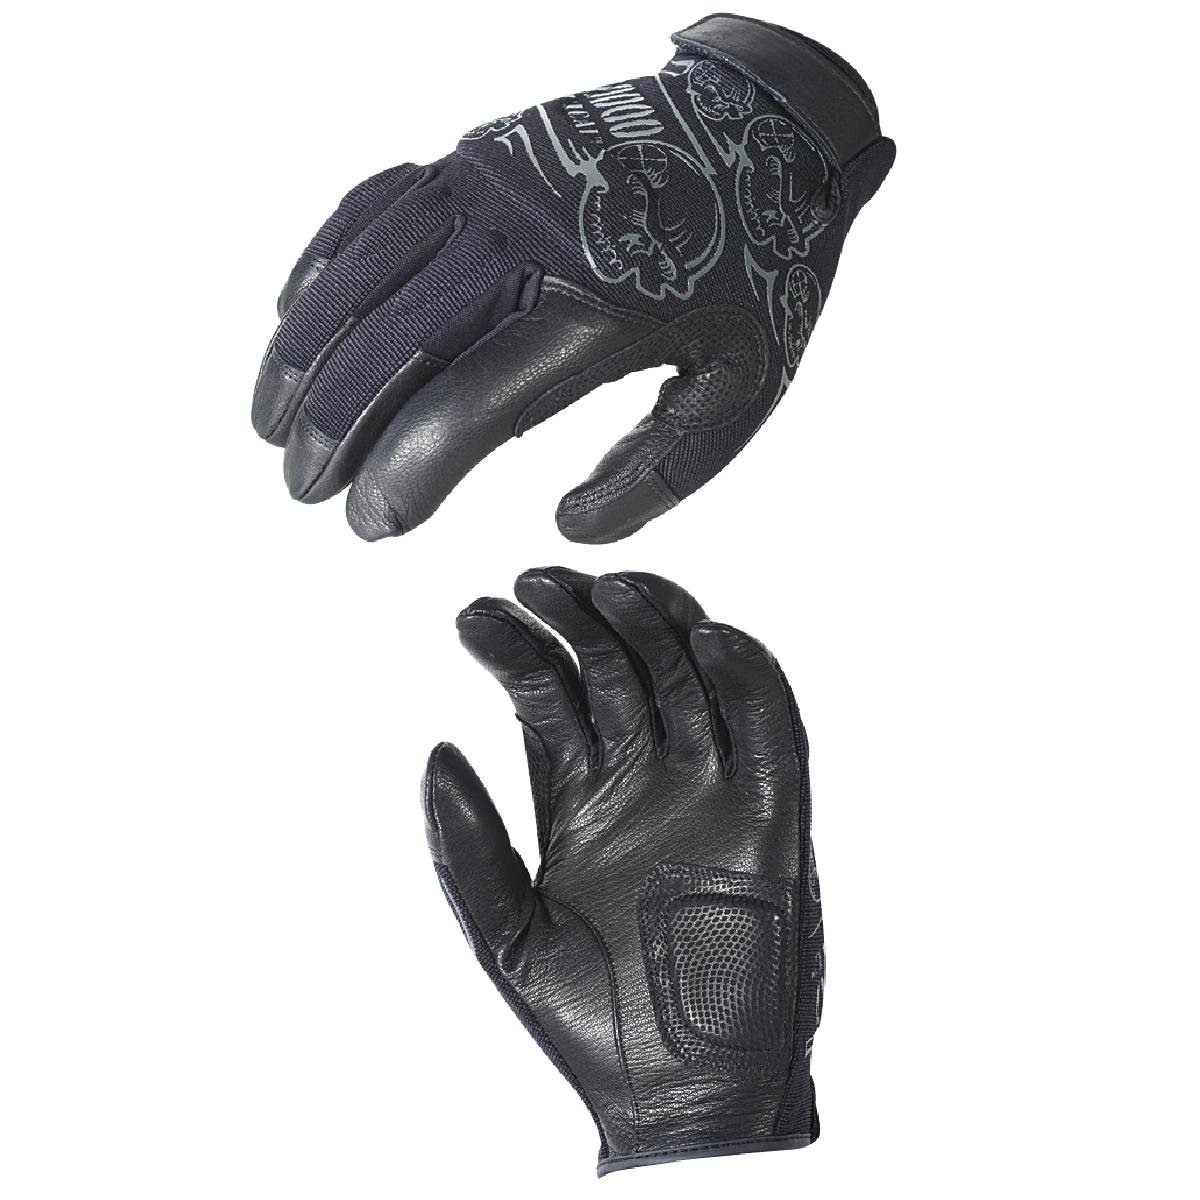 Voodoo Tactical Liberator Gloves - 20-987301094 by Voodoo Tactical